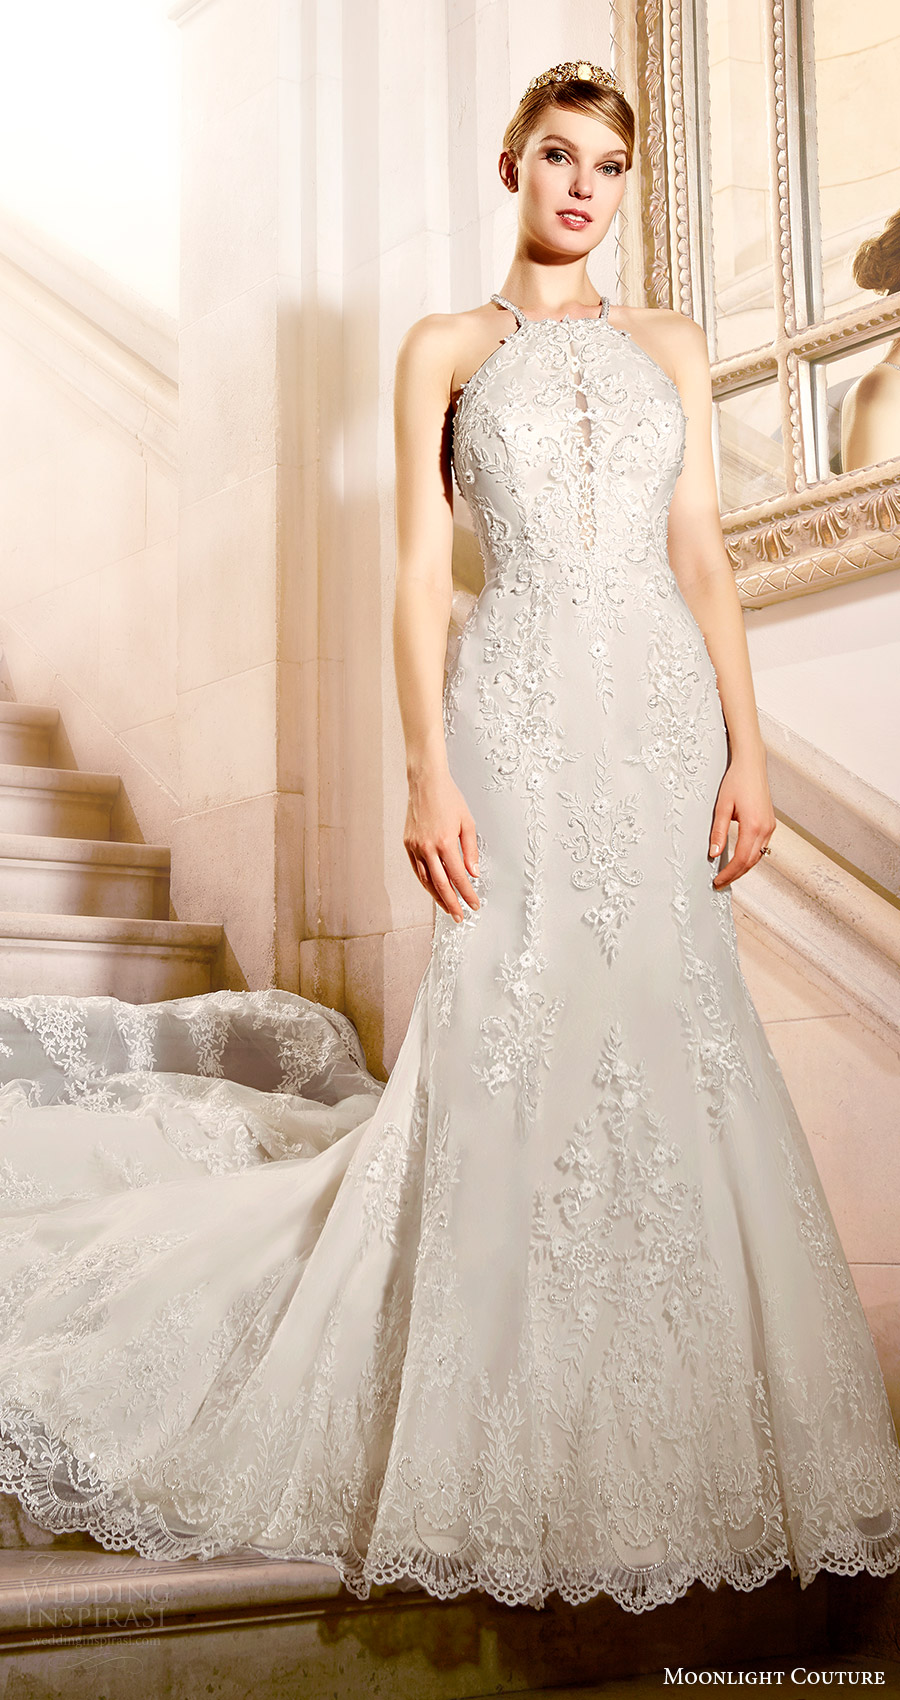 moonlight couture bridal fall 2016 sleeveless beaded halter neck lace mermaid wedding dress (h1317) mv train